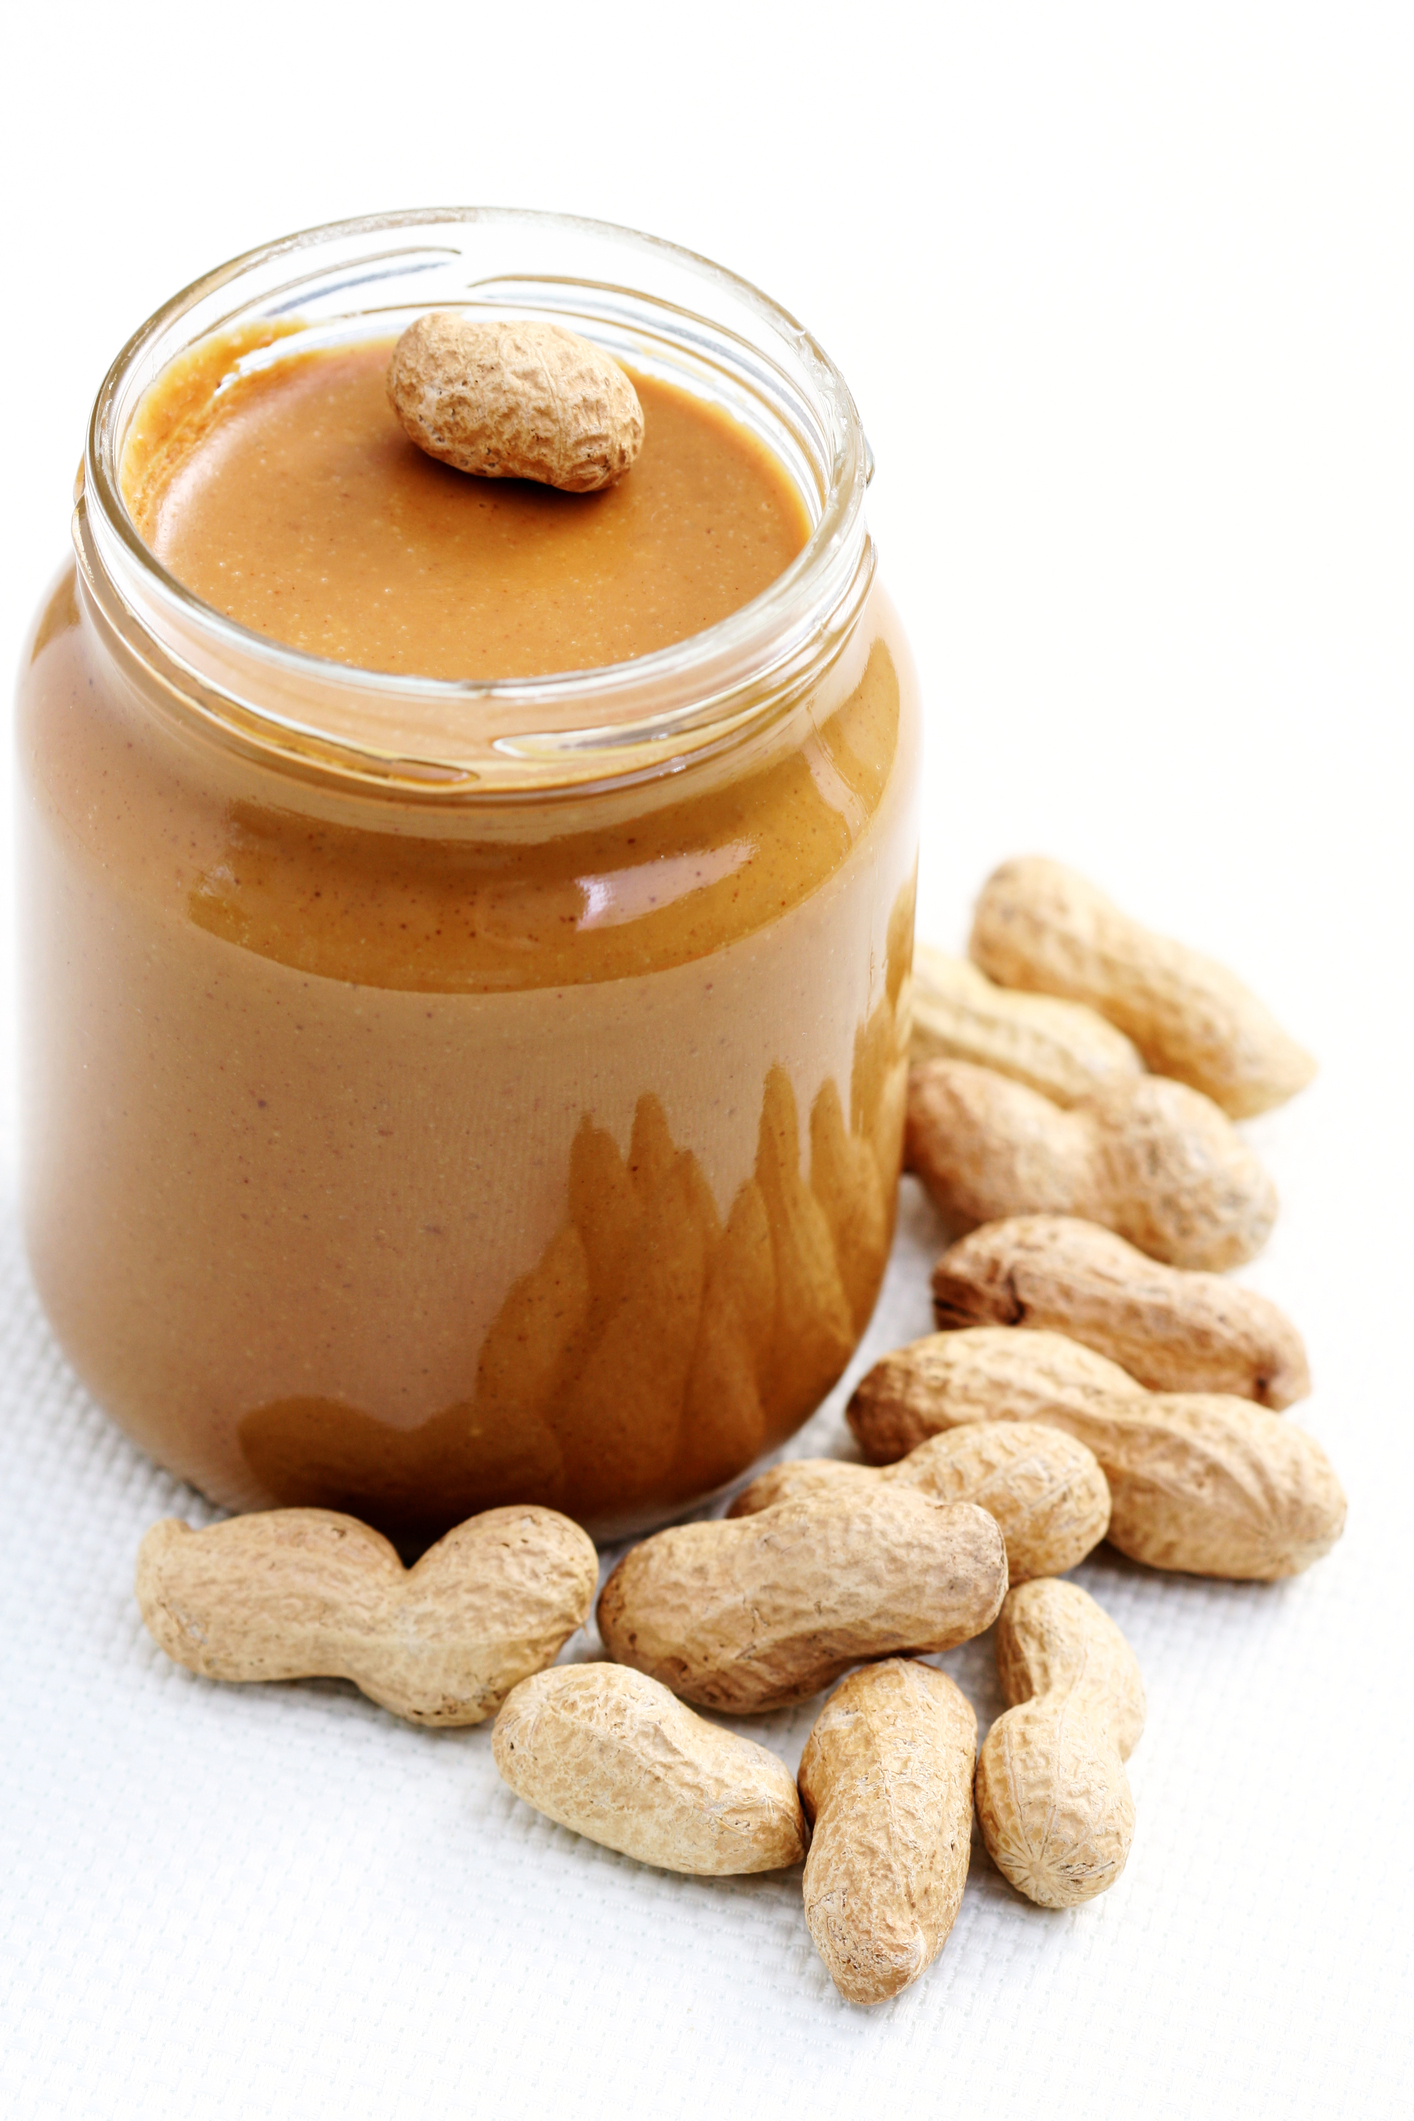 Peanut Butter Pics, Food Collection